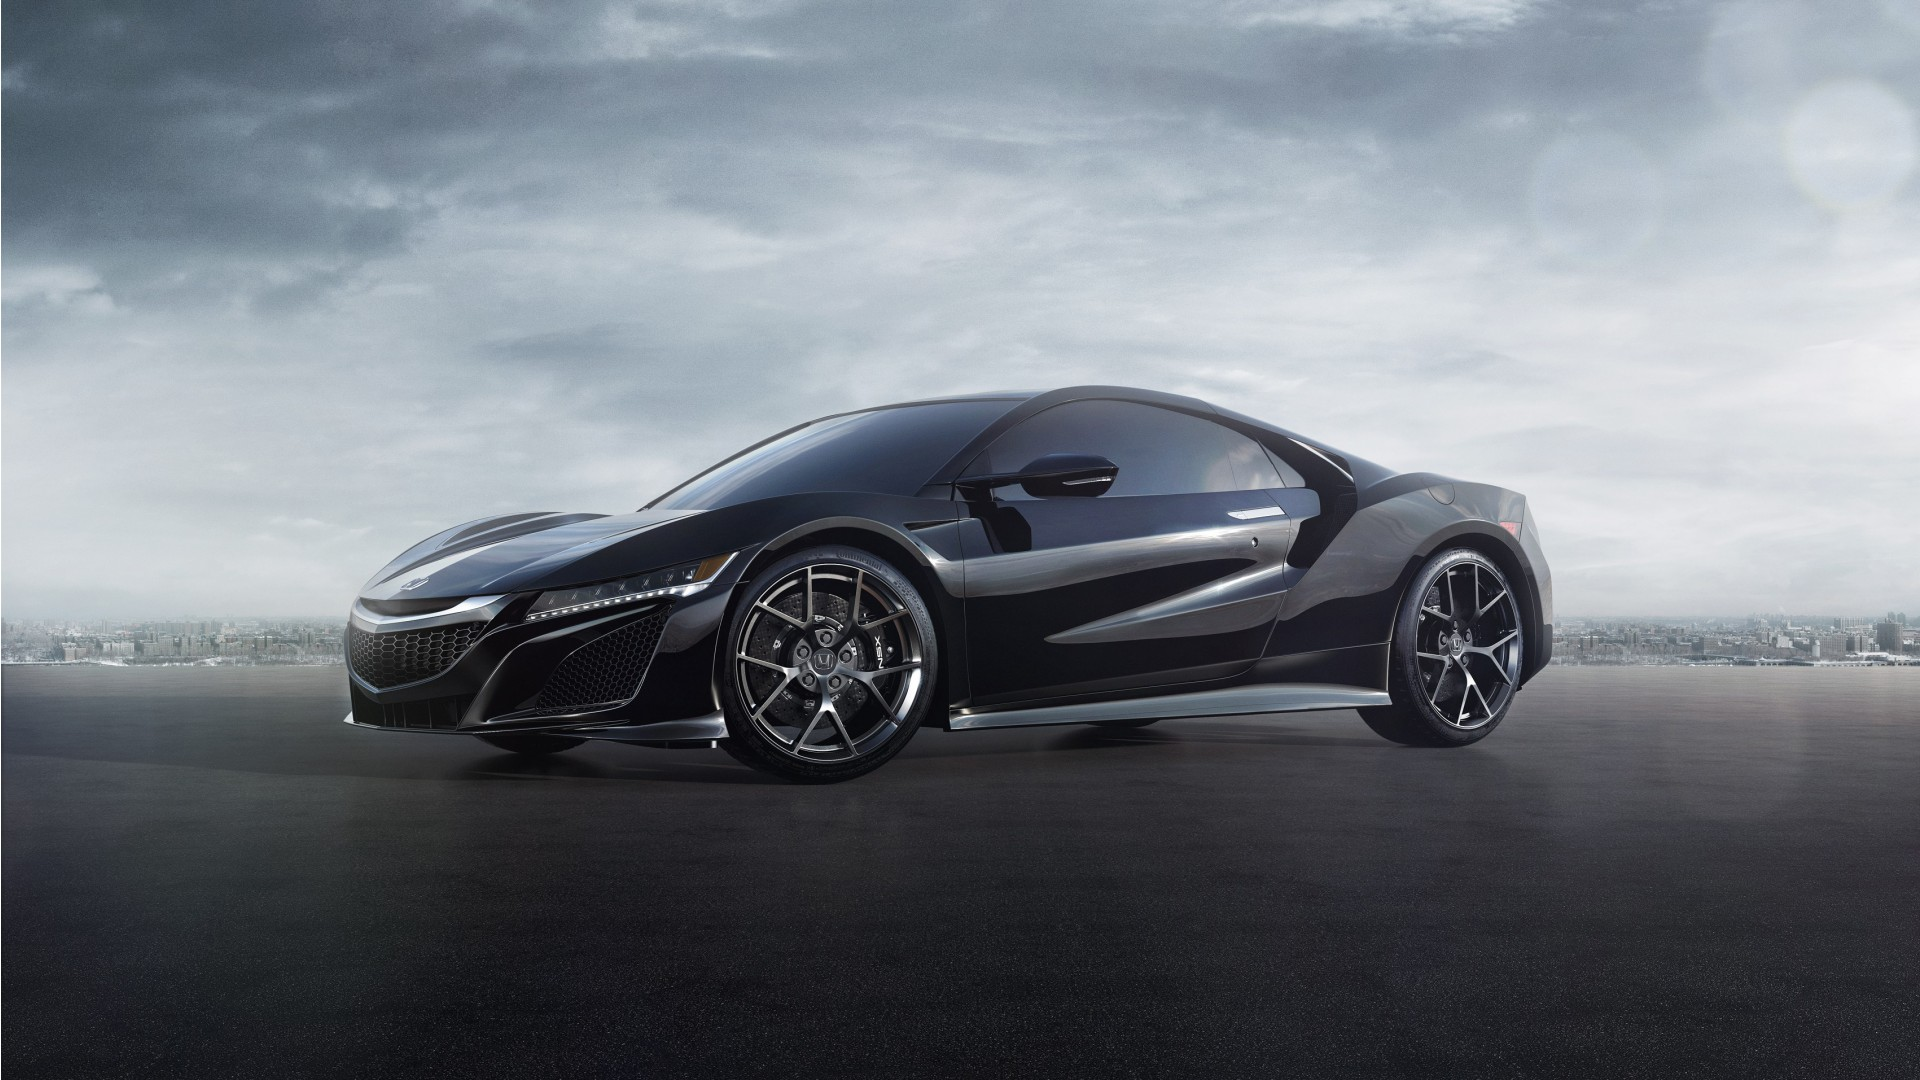 Bmw Car Hd Wallpaper Honda Nsx 2018 Wallpaper Hd Car Wallpapers Id 9123